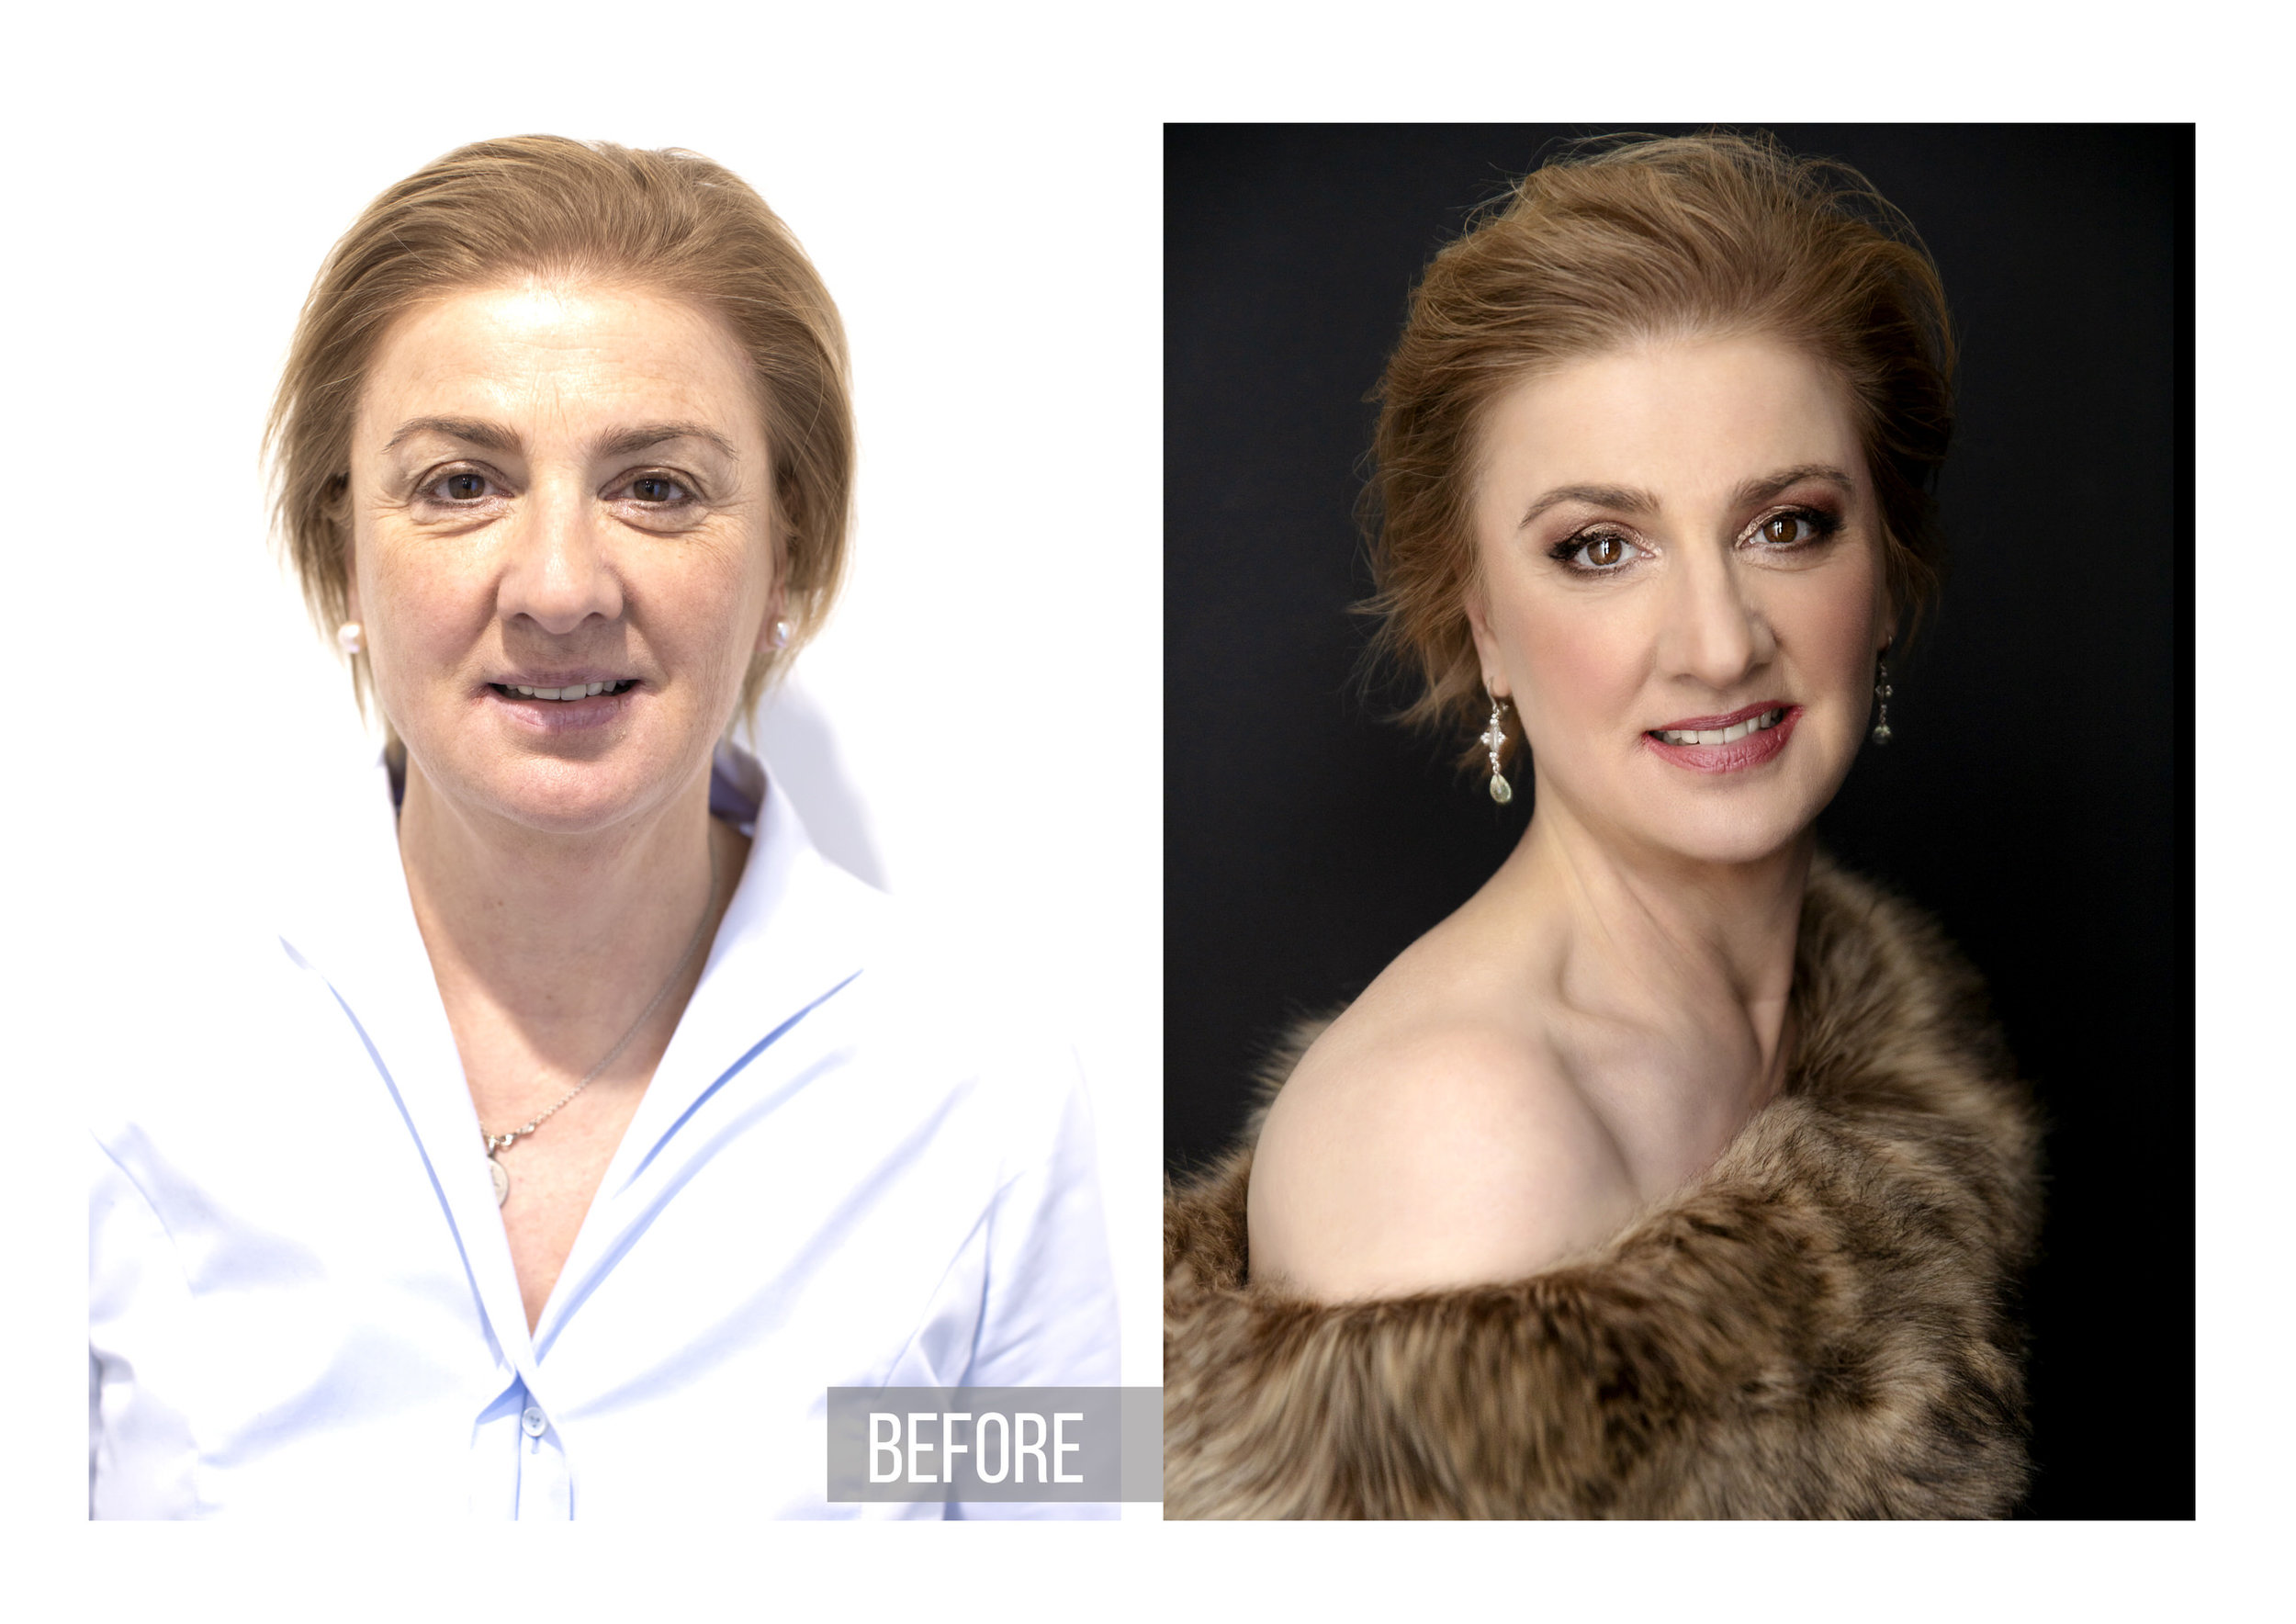 Glamour-makeover-transformation-portrait-photography